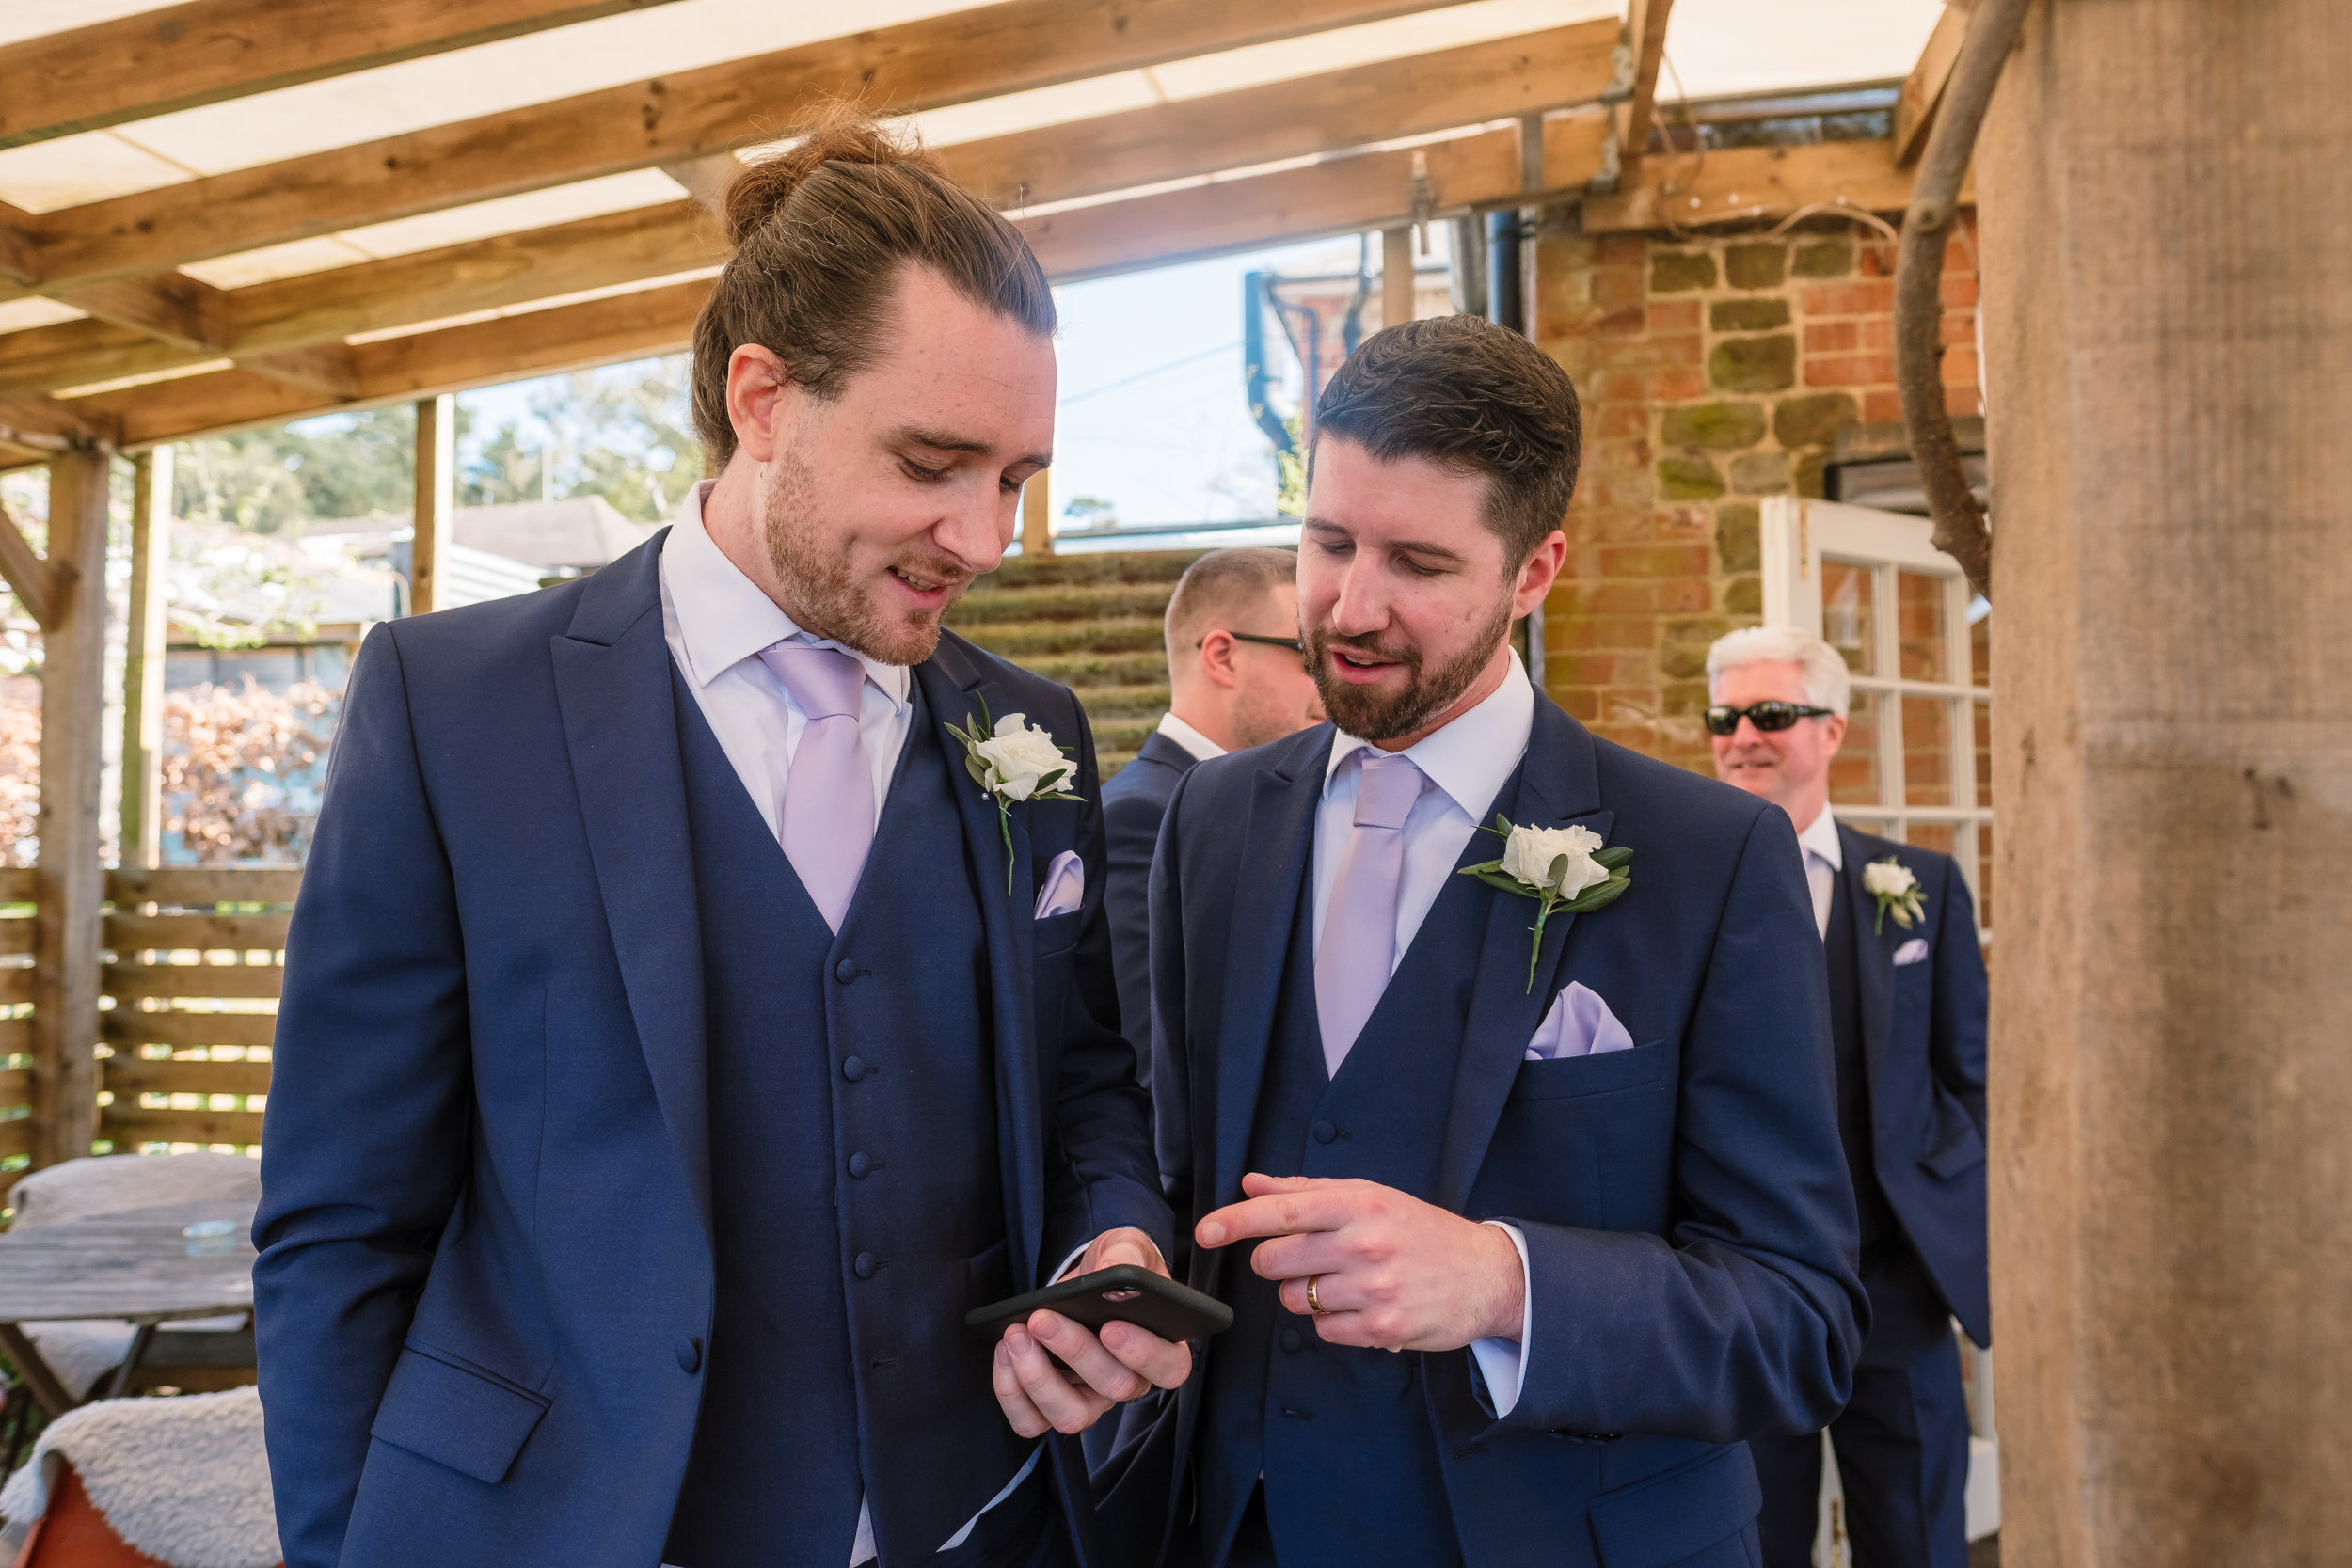 Sarah-Fishlock-Photography : Hampshire-wedding-photographer-hampshire : fleet-wedding-photographer-fleet : Millbridge-Court-Wedding-Photographer : Millbridge-Court-Wedding-Venue : Surrey-wedding-venue-379.jpg